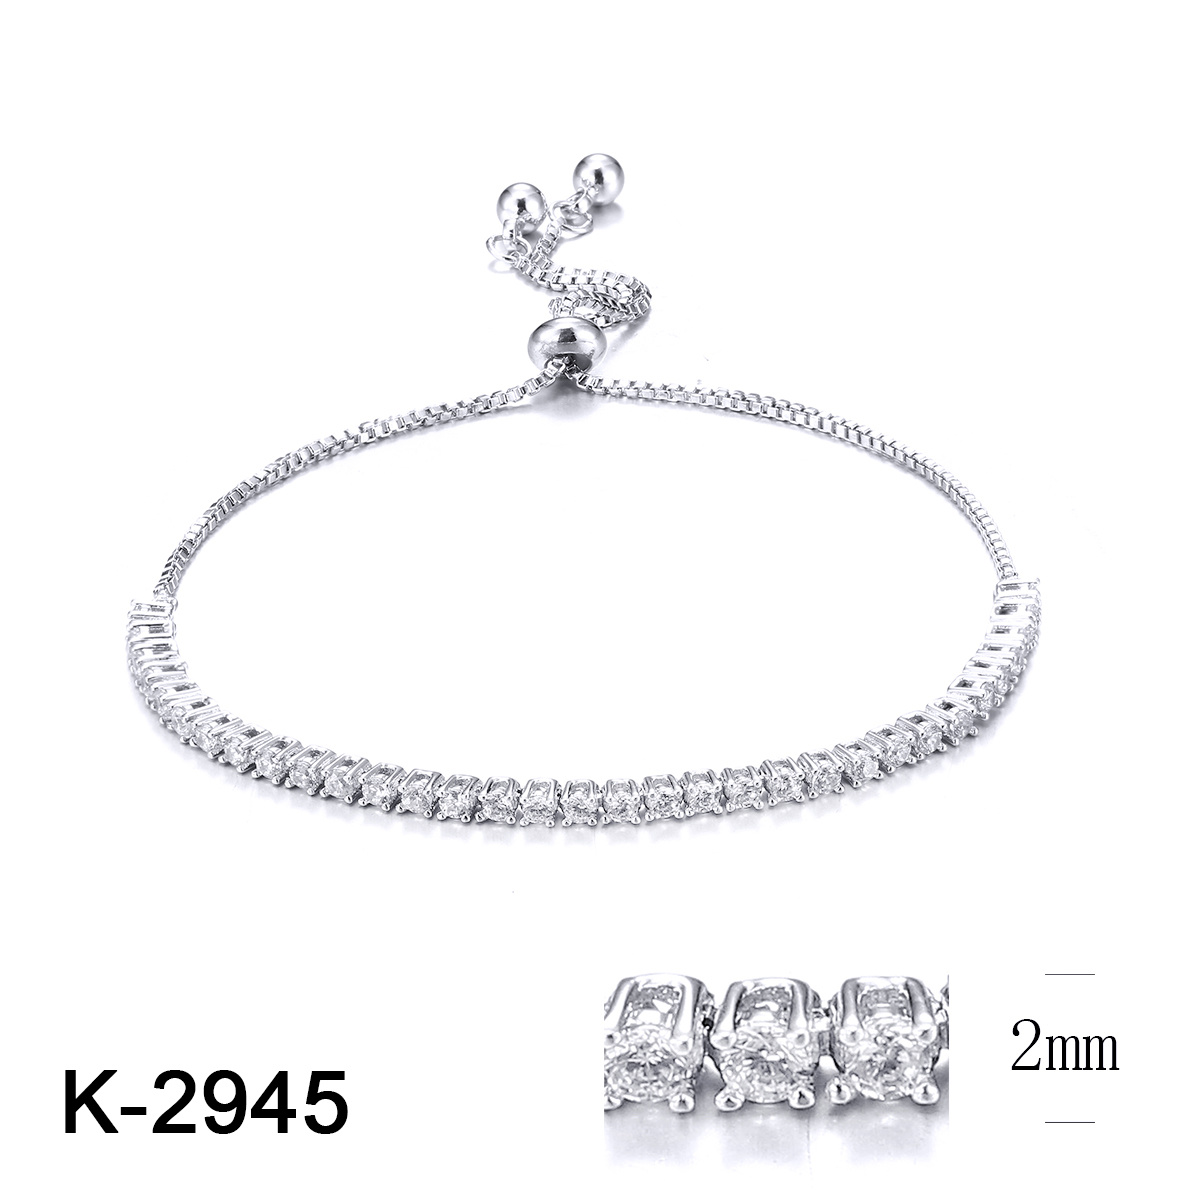 032f01c3e7f94 Wholesale 2019 New Fashion Jewelry 925 Sterling Silver Cubic Zirconia Stone  Adjustable Charm Tennis Bracelet for Women